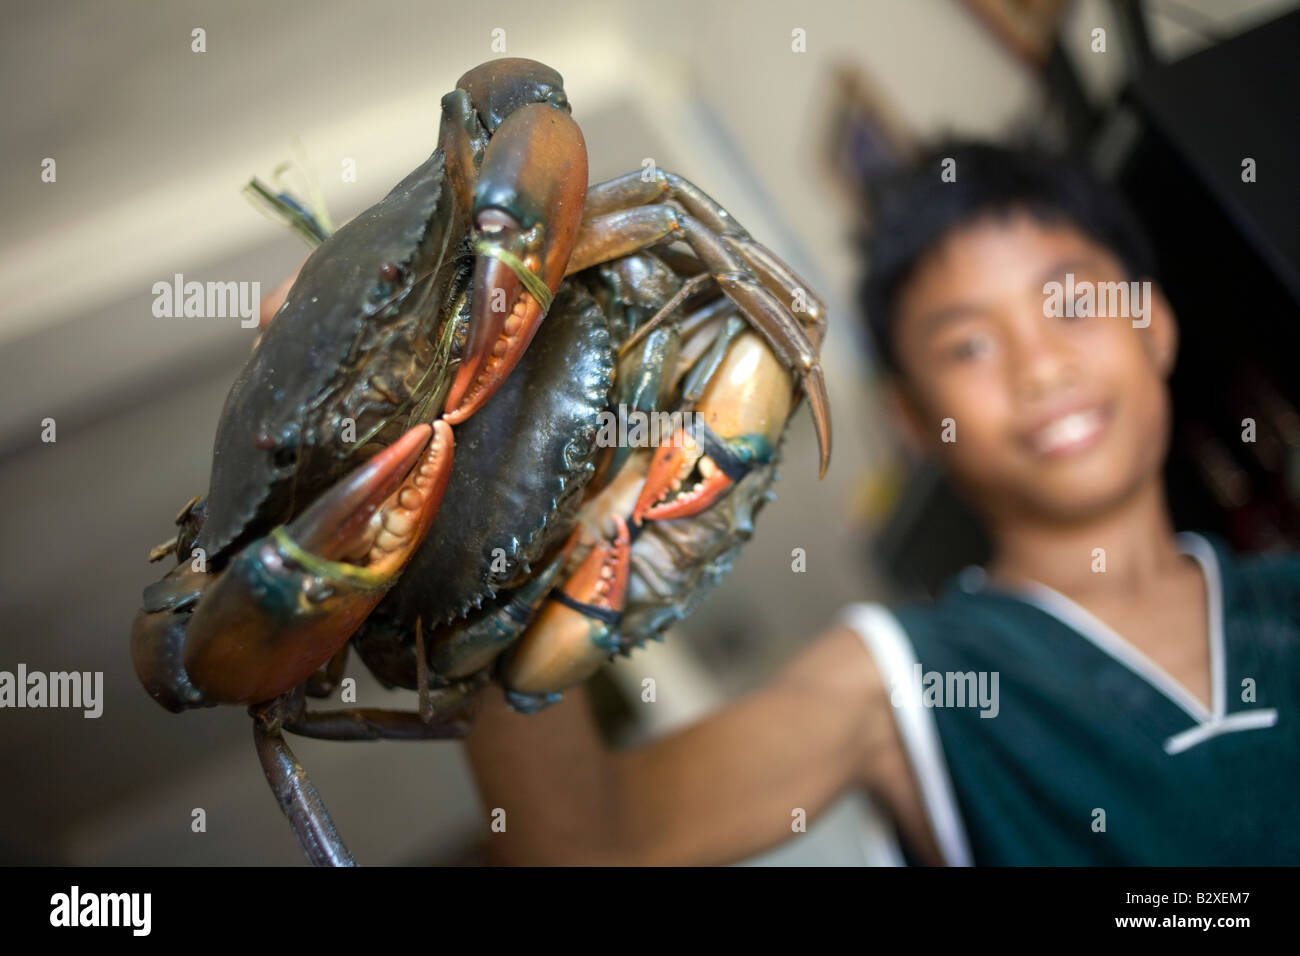 A Filipino boy clutches a pair of crabs in Mansalay, Oriental Mindoro, Philippines. - Stock Image